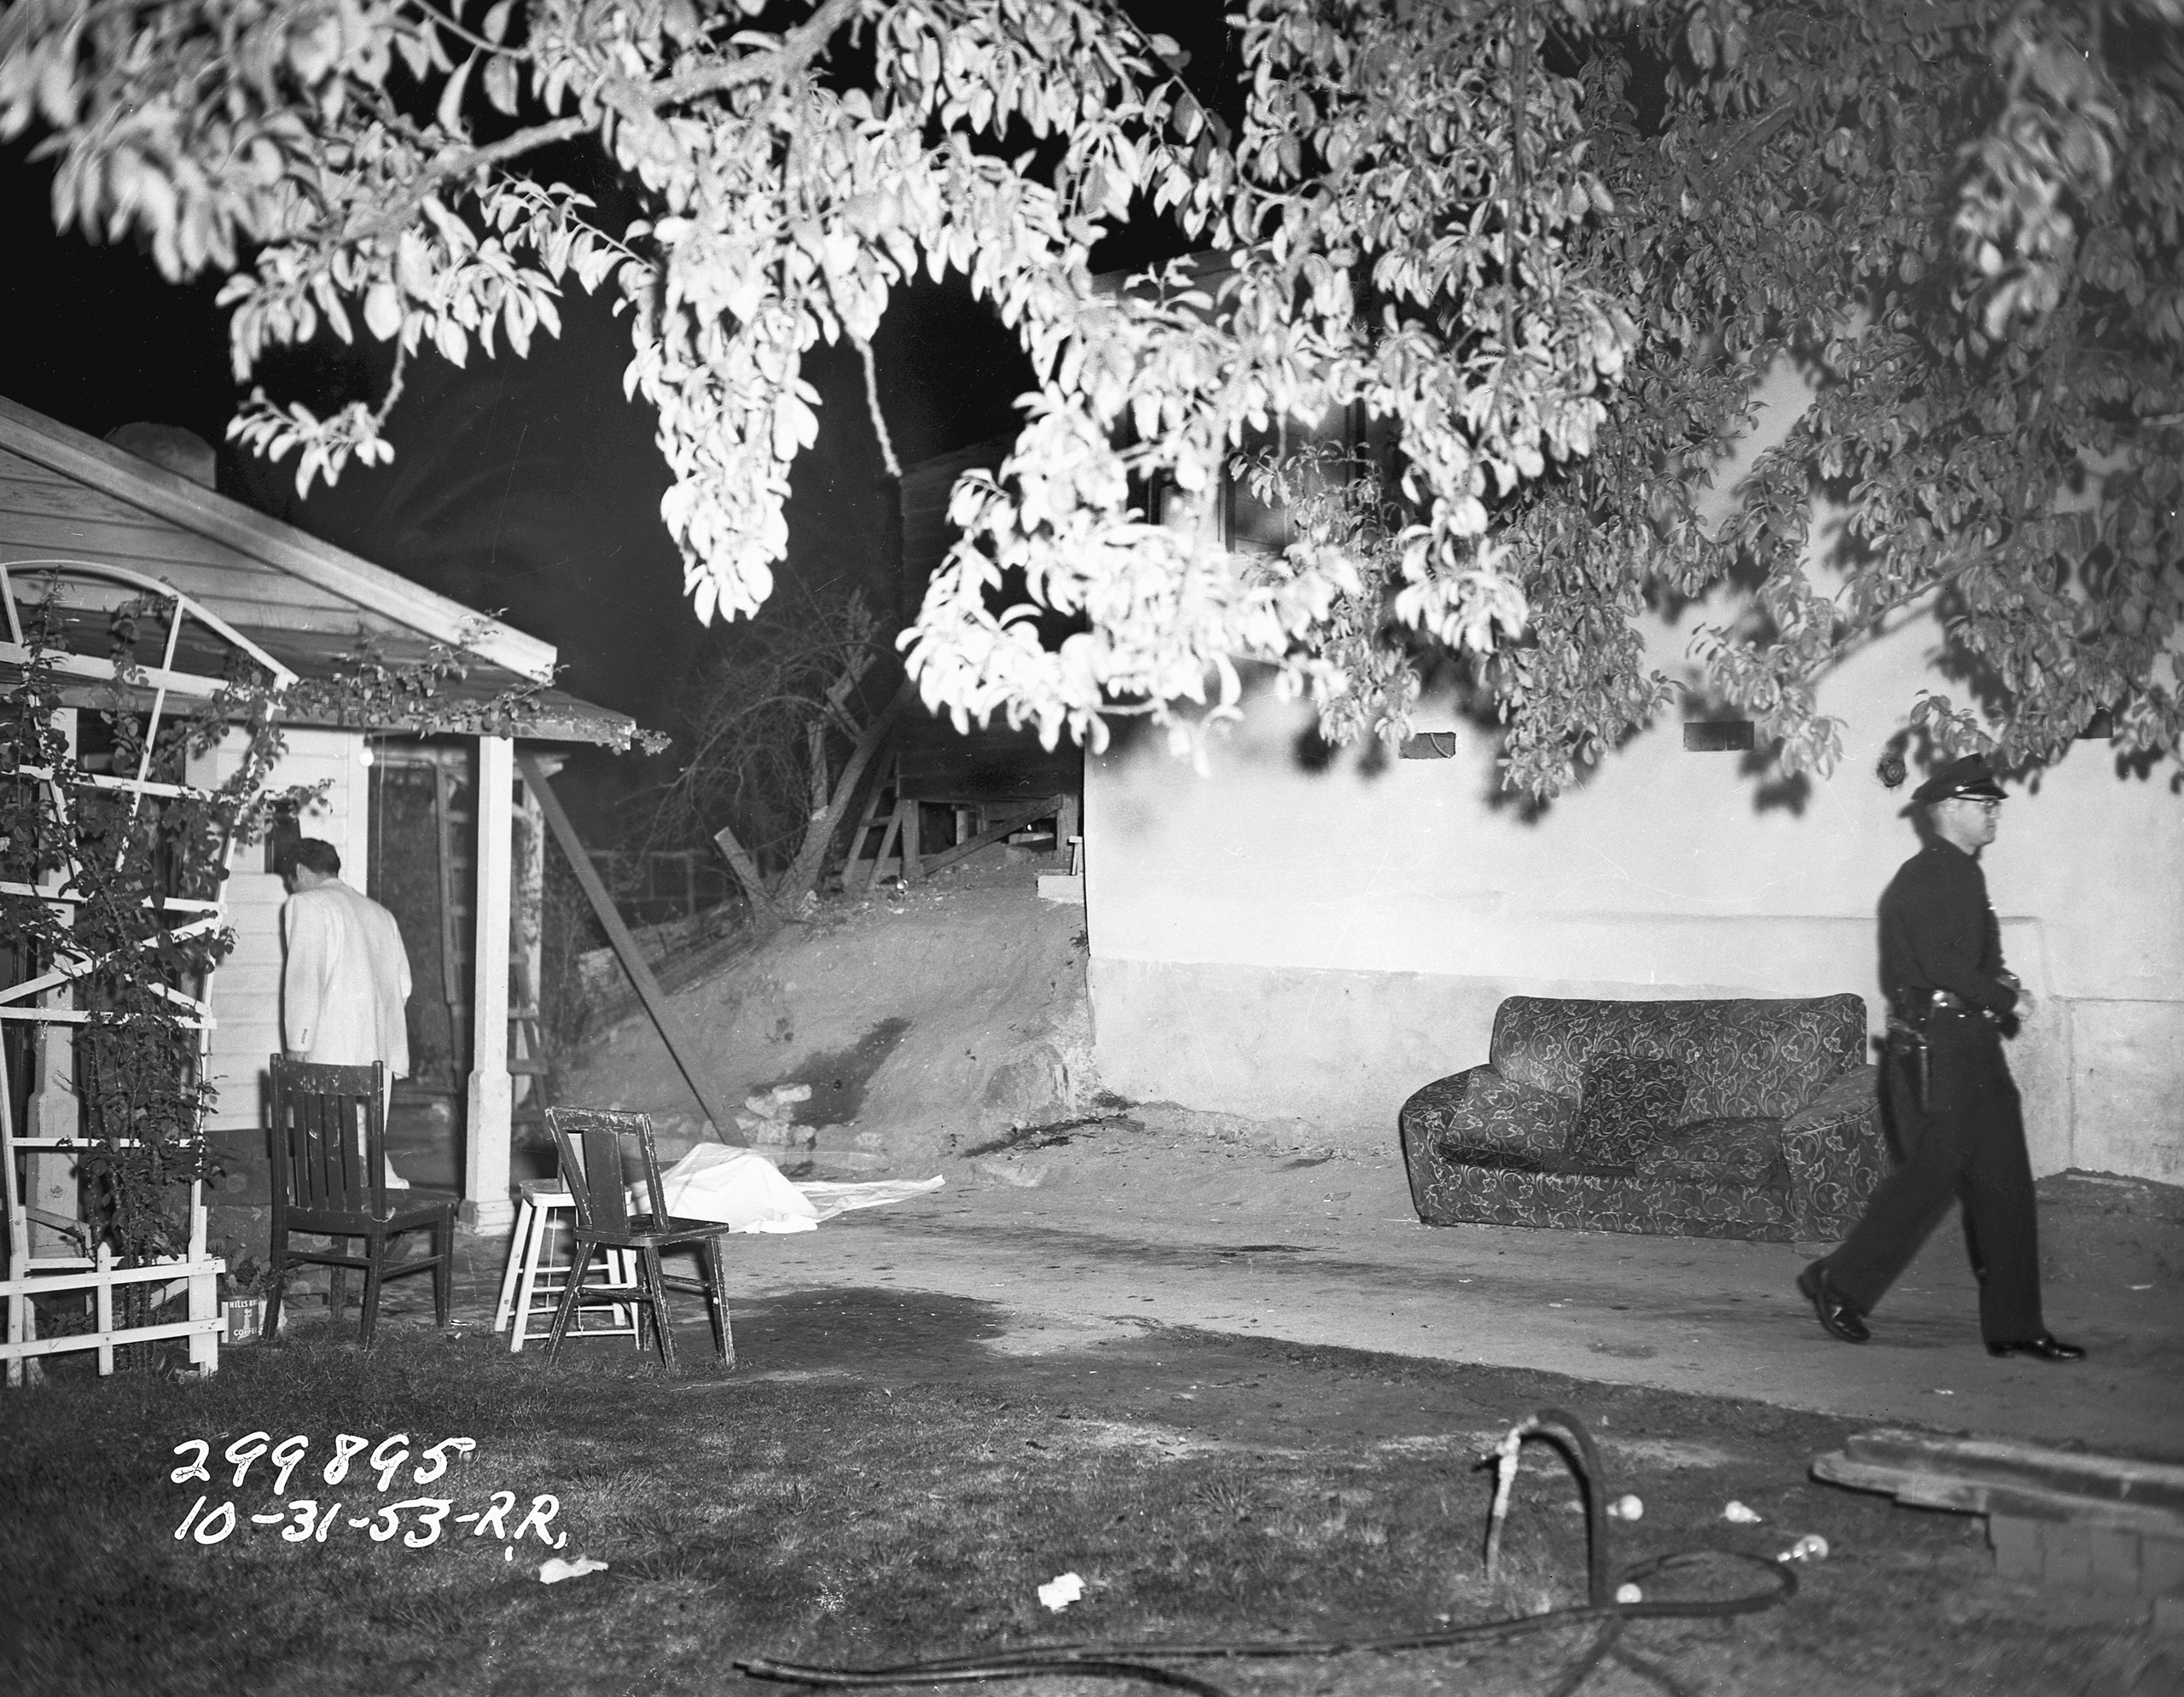 A Halloween crime scene in the City of Angels, complete with a dead body under a sheet on October 31, 1953.